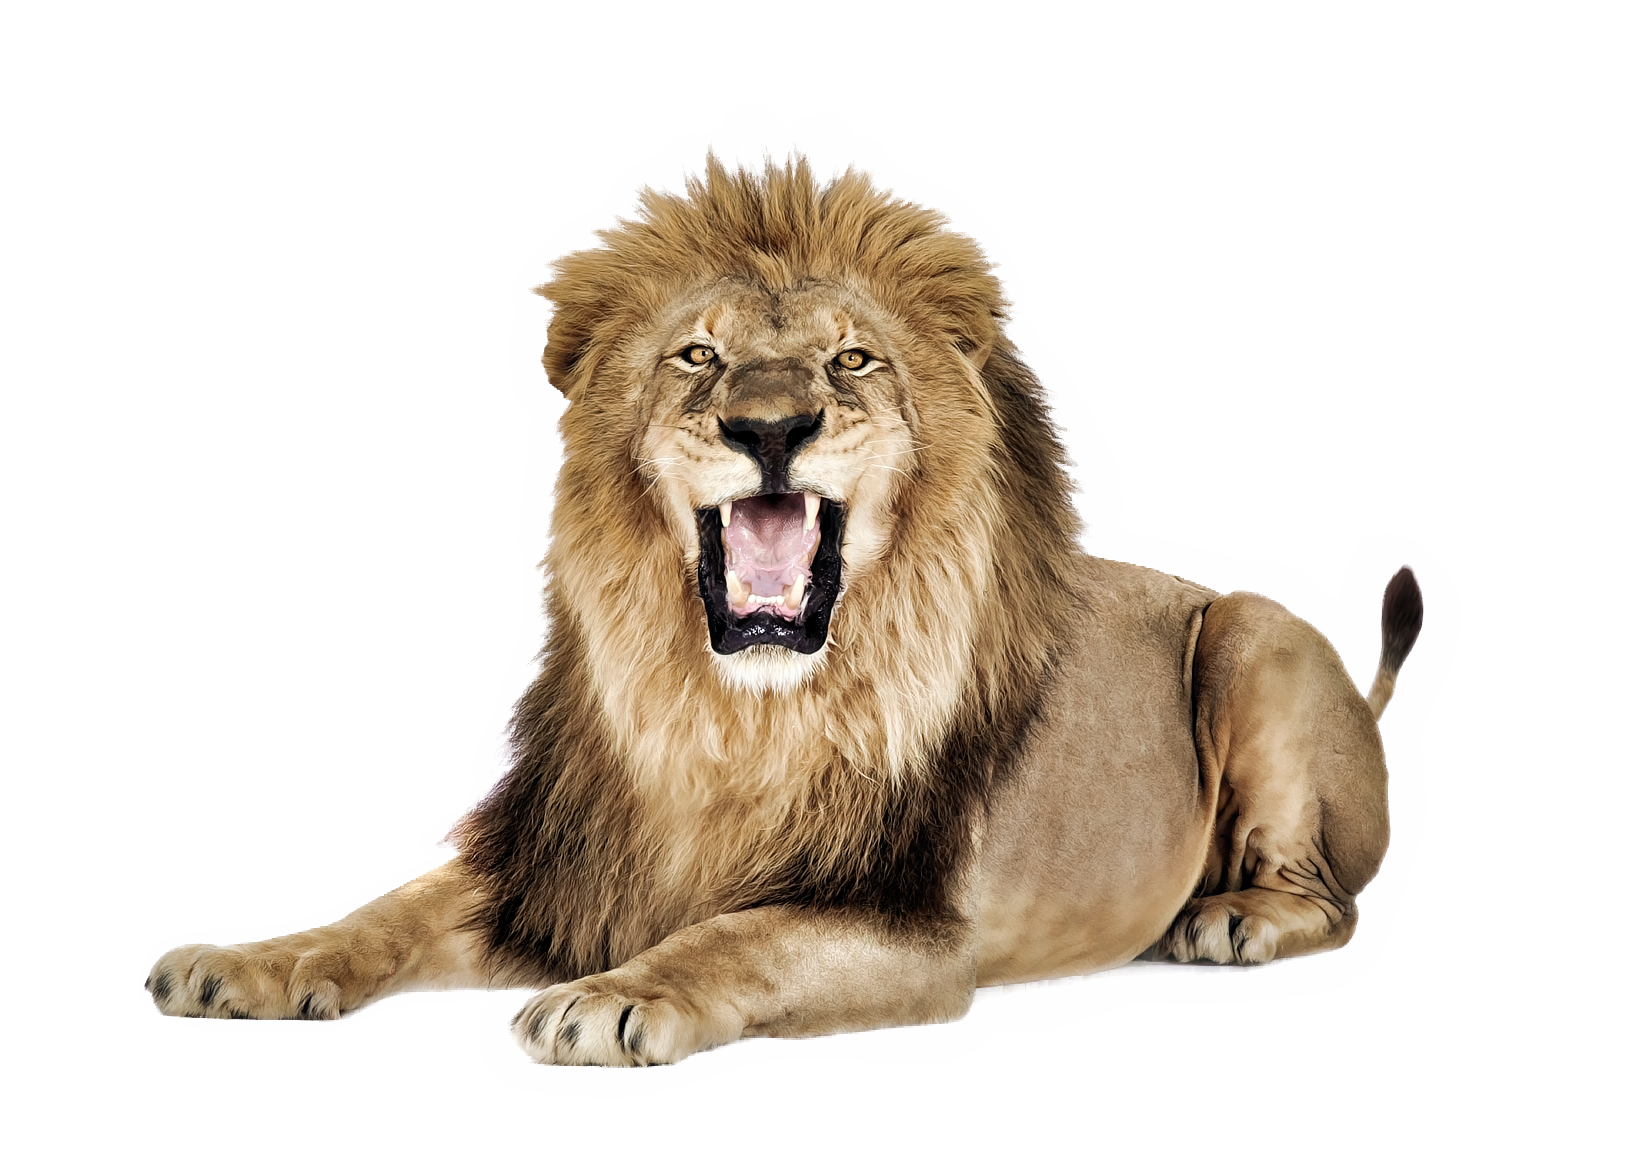 Lion Png - Lion Png PNG Image